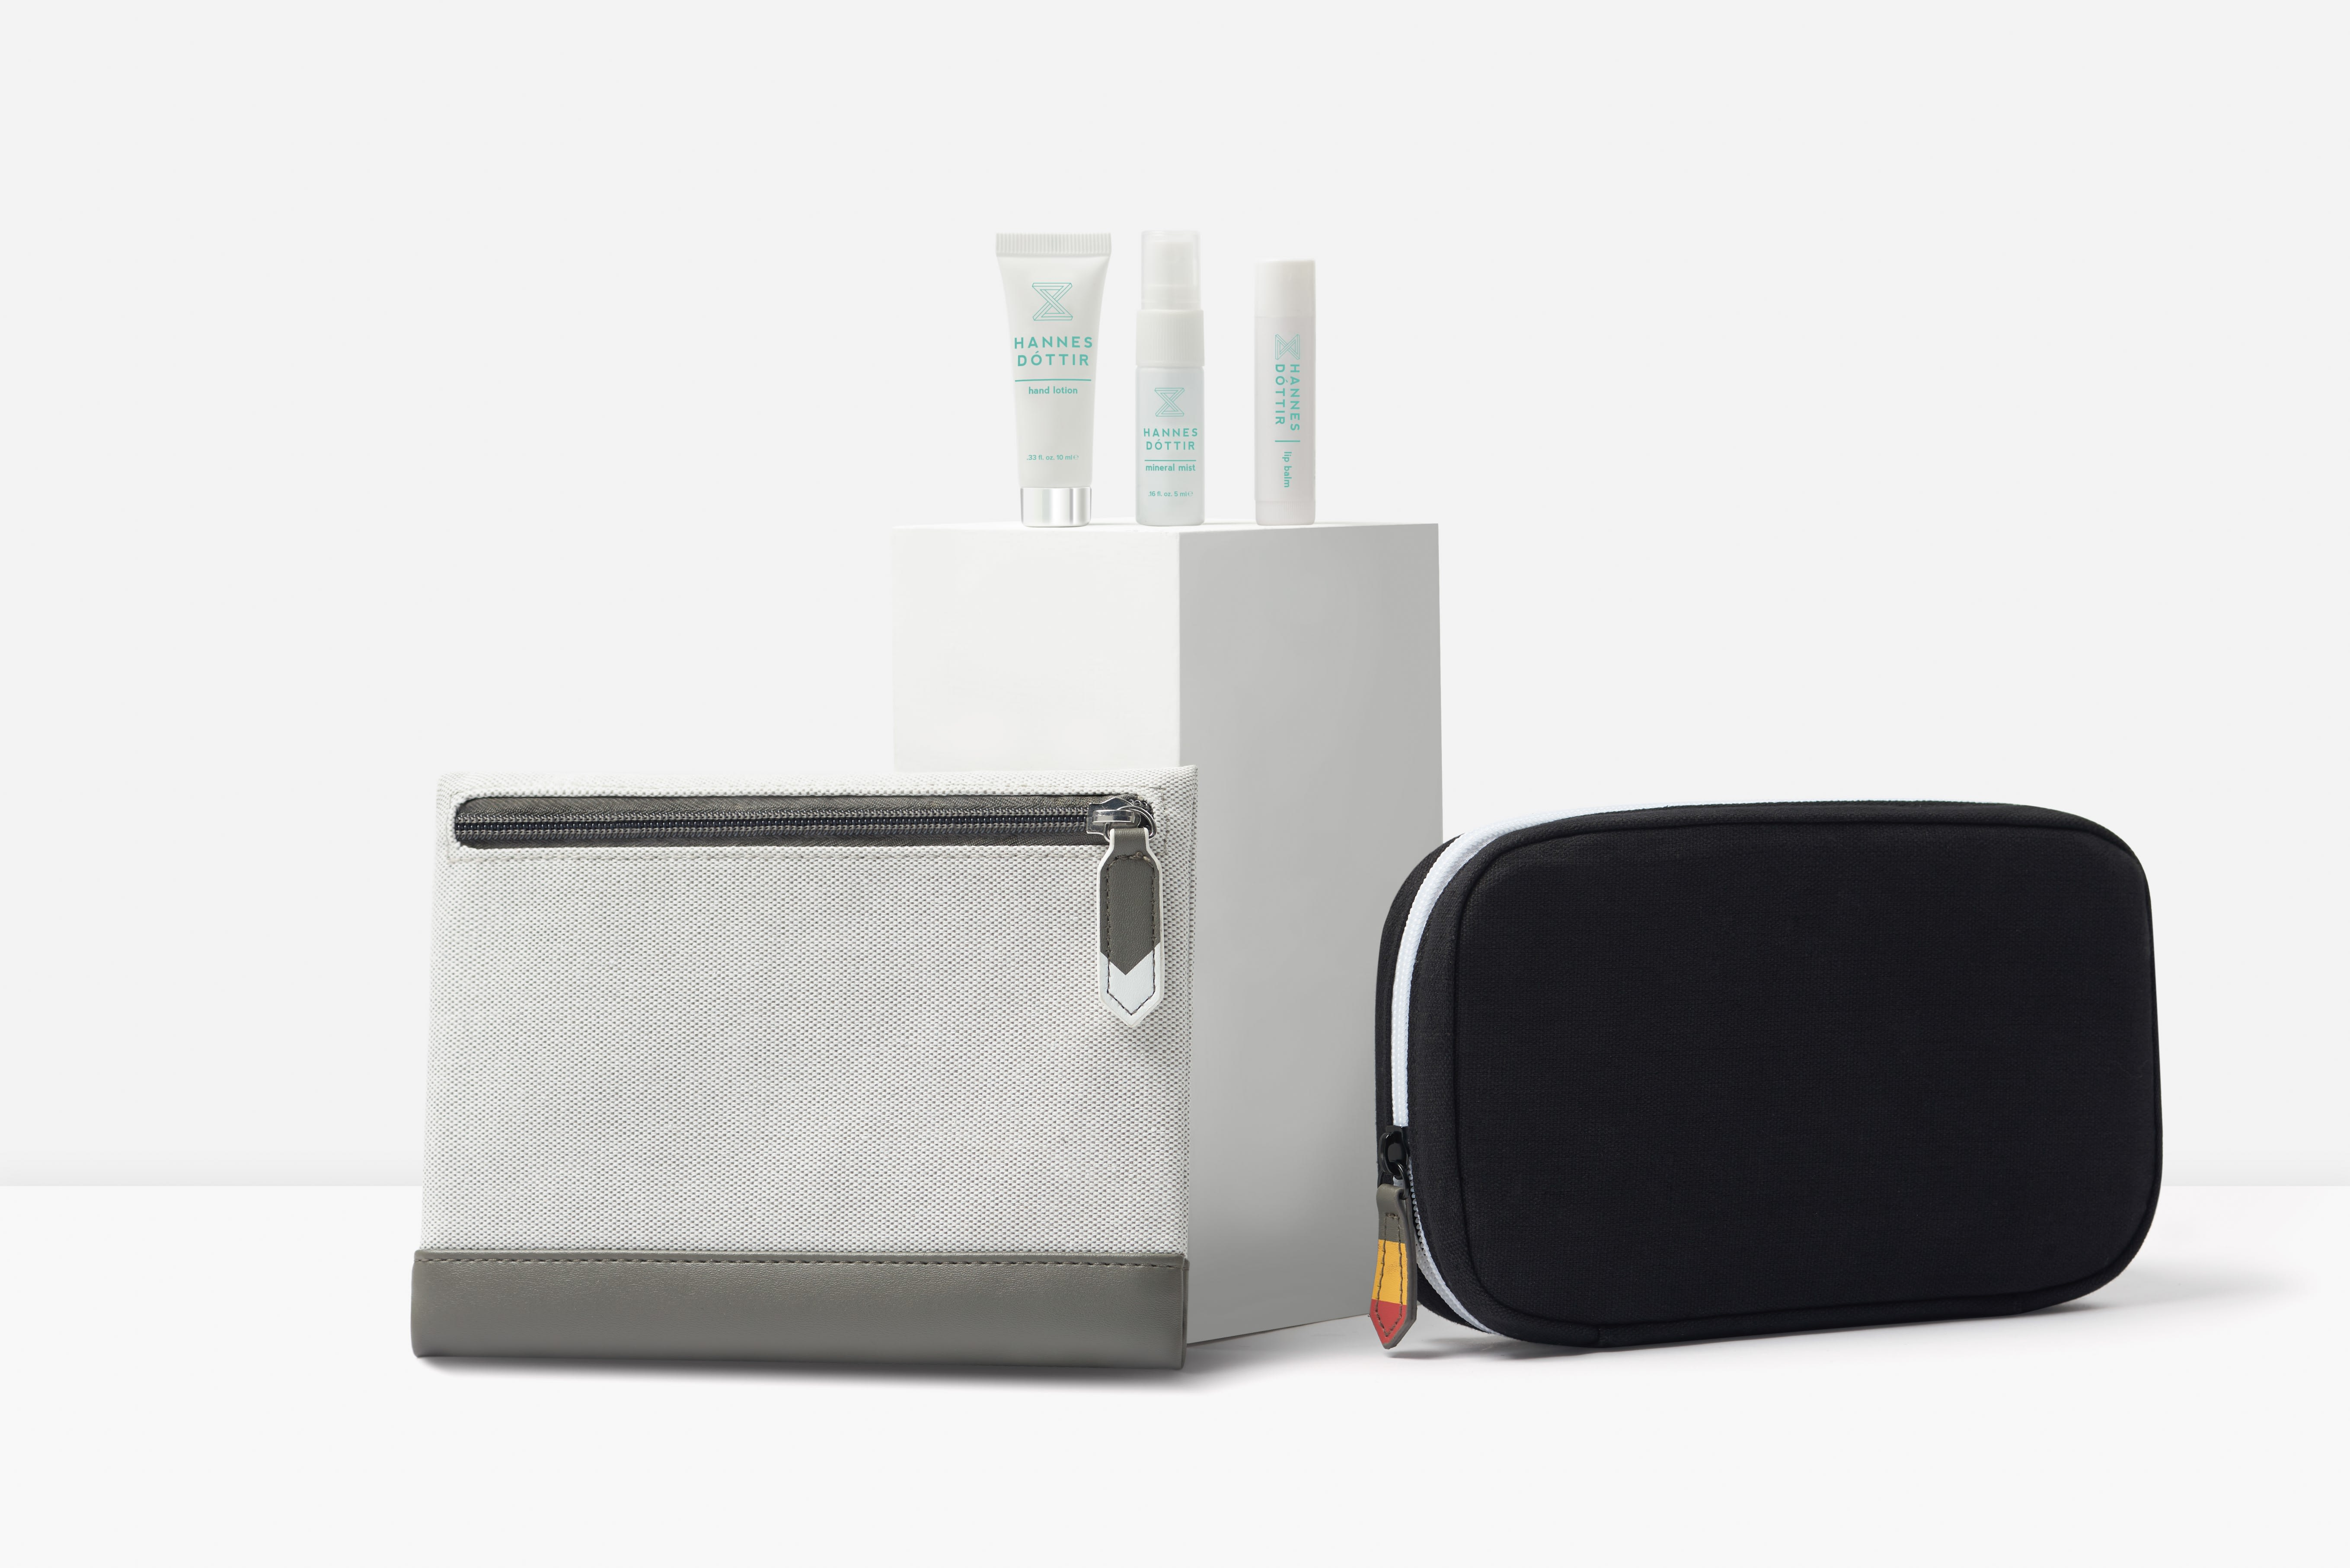 Icelandair's two new amenity designs shown side by side with some toiletries placed on a pedestal behind the bags